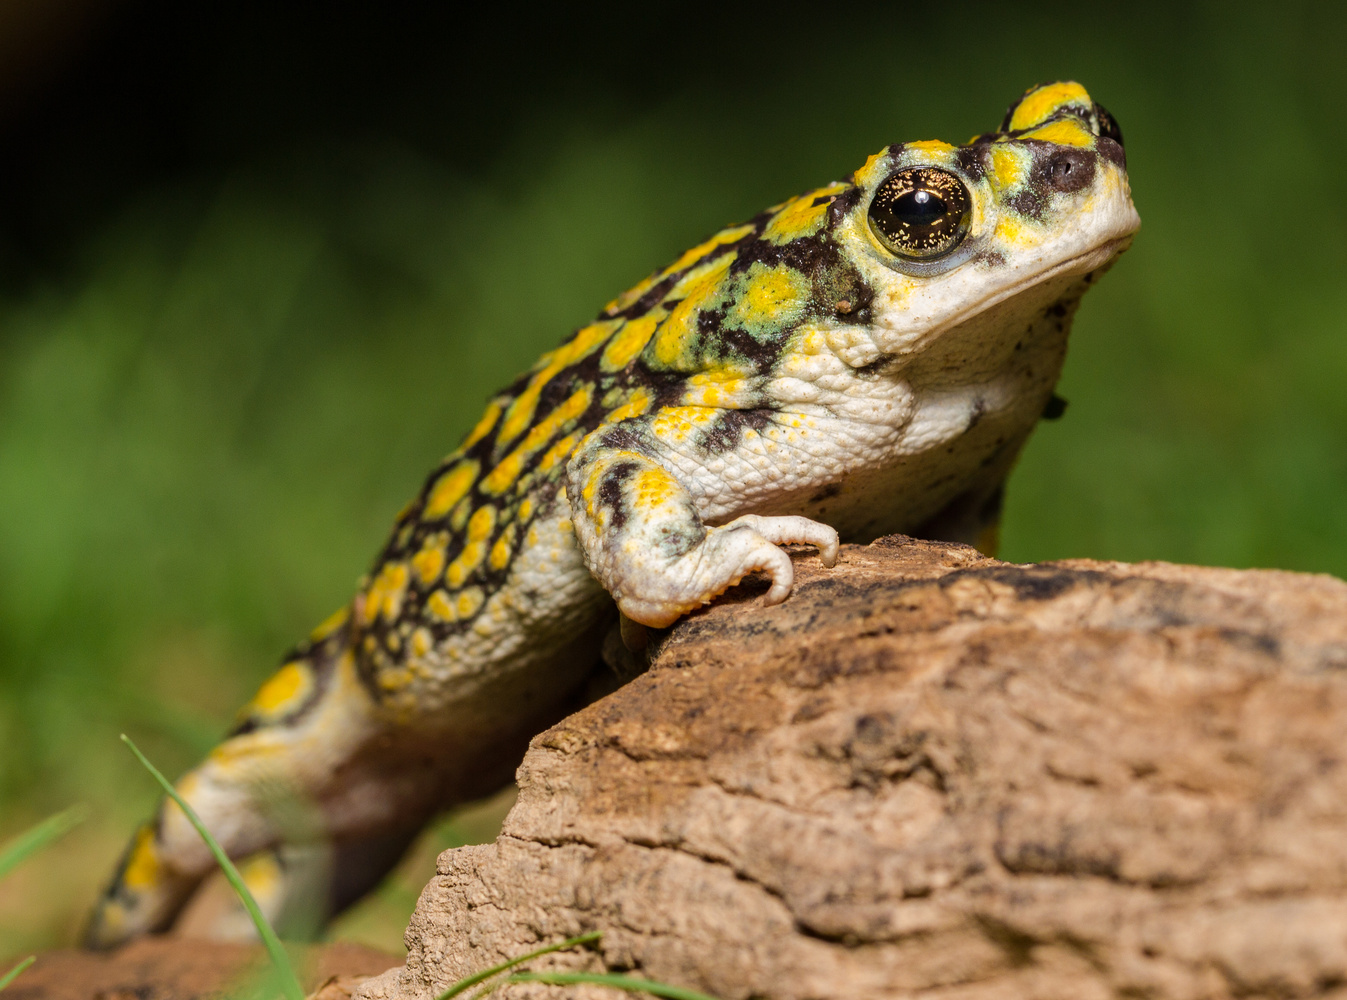 Arizona Green Toad by Dave Zeldin